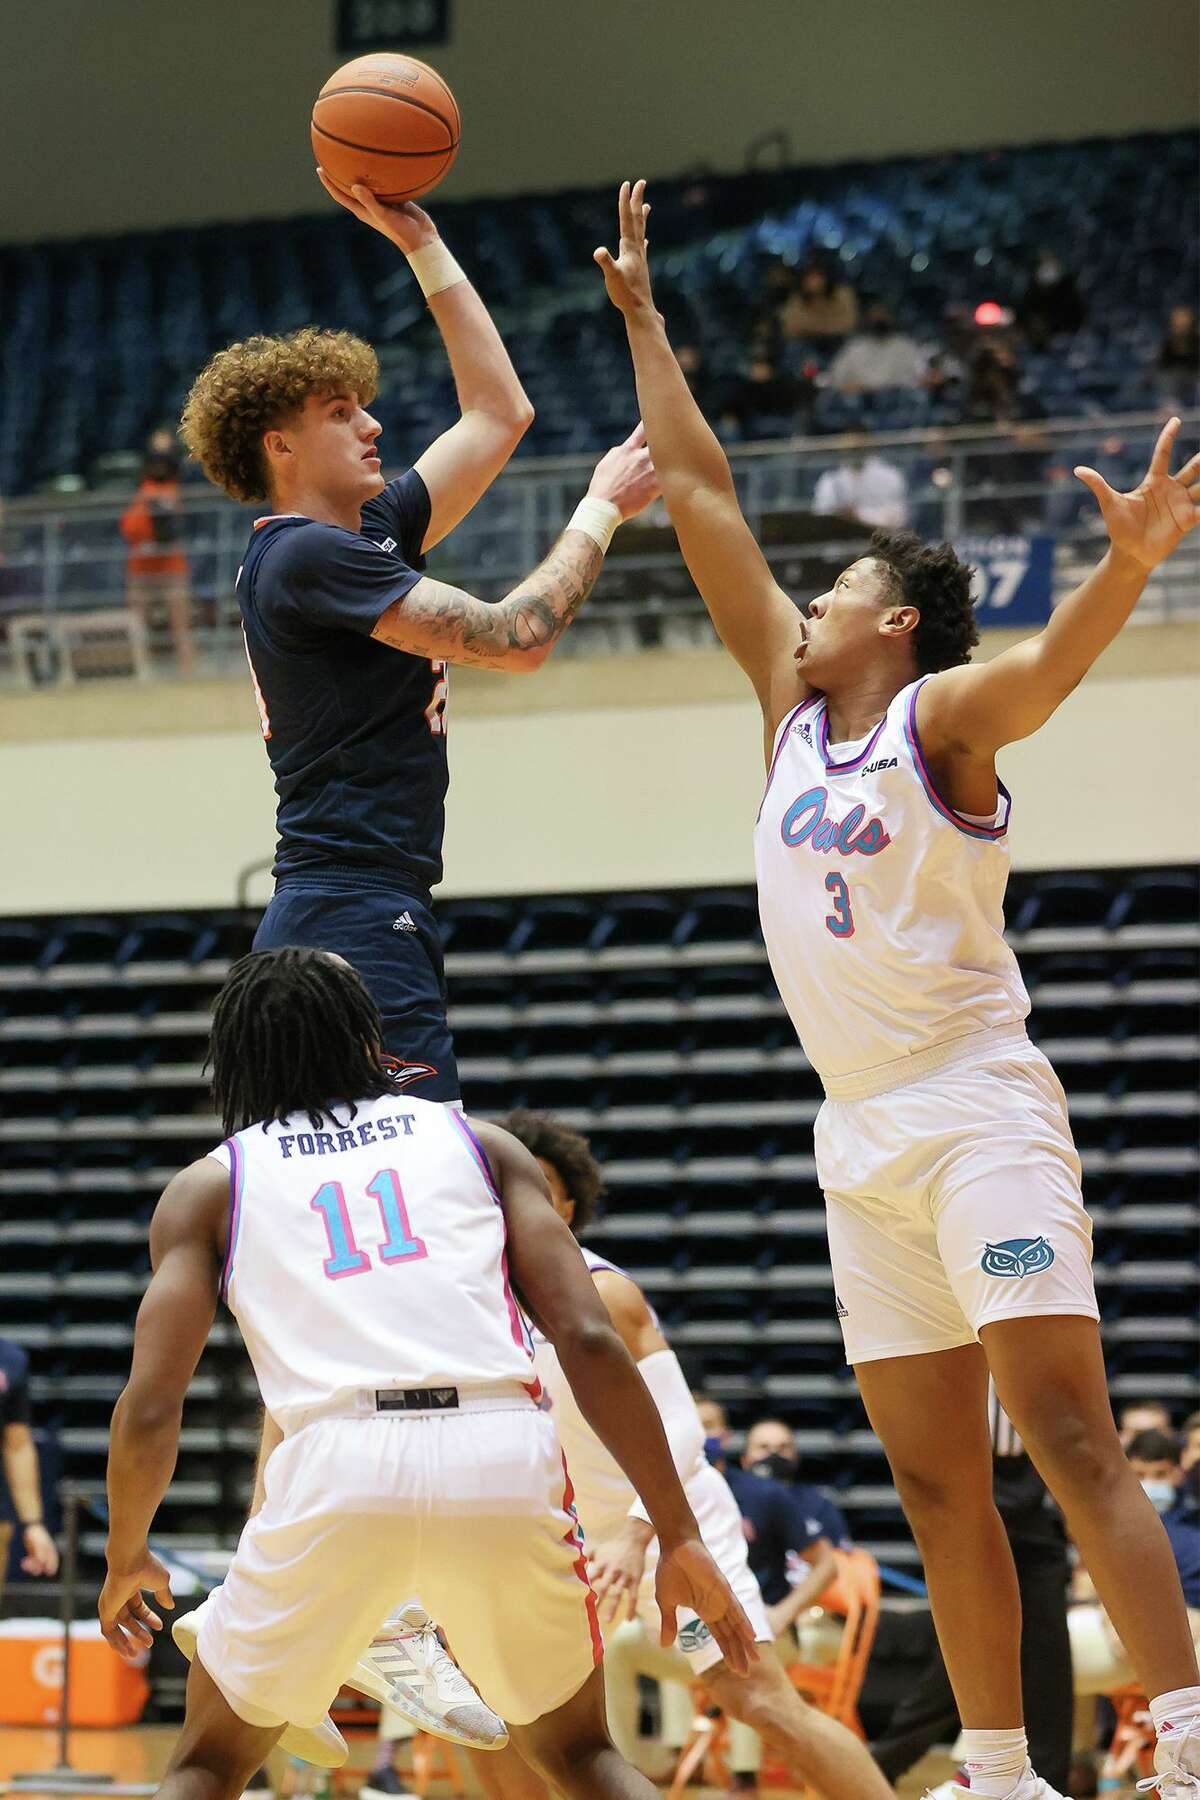 UTSA's Jacob Germany shoots over Florida Atlantic's Giancarlo Rosado during the first half of their Men's Conference USA basketball game at the Convocation Center on Saturday, Feb. 13, 2021. UTSA beat the Owls 86-75.